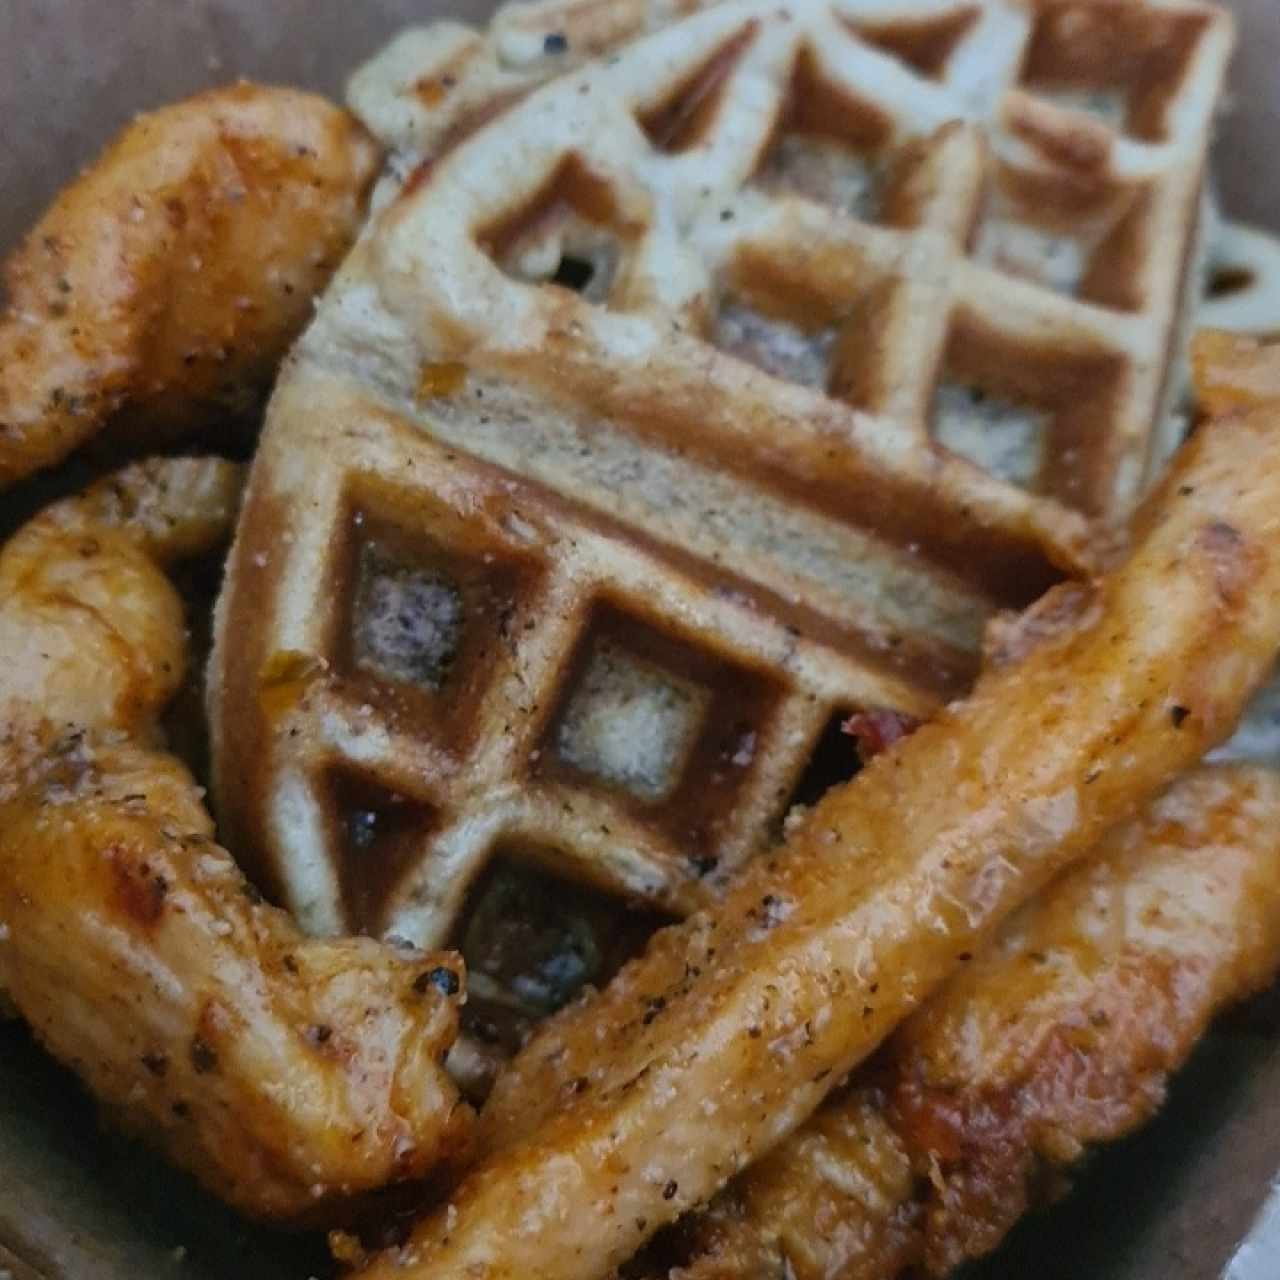 Brunch - Chicken and Waffles